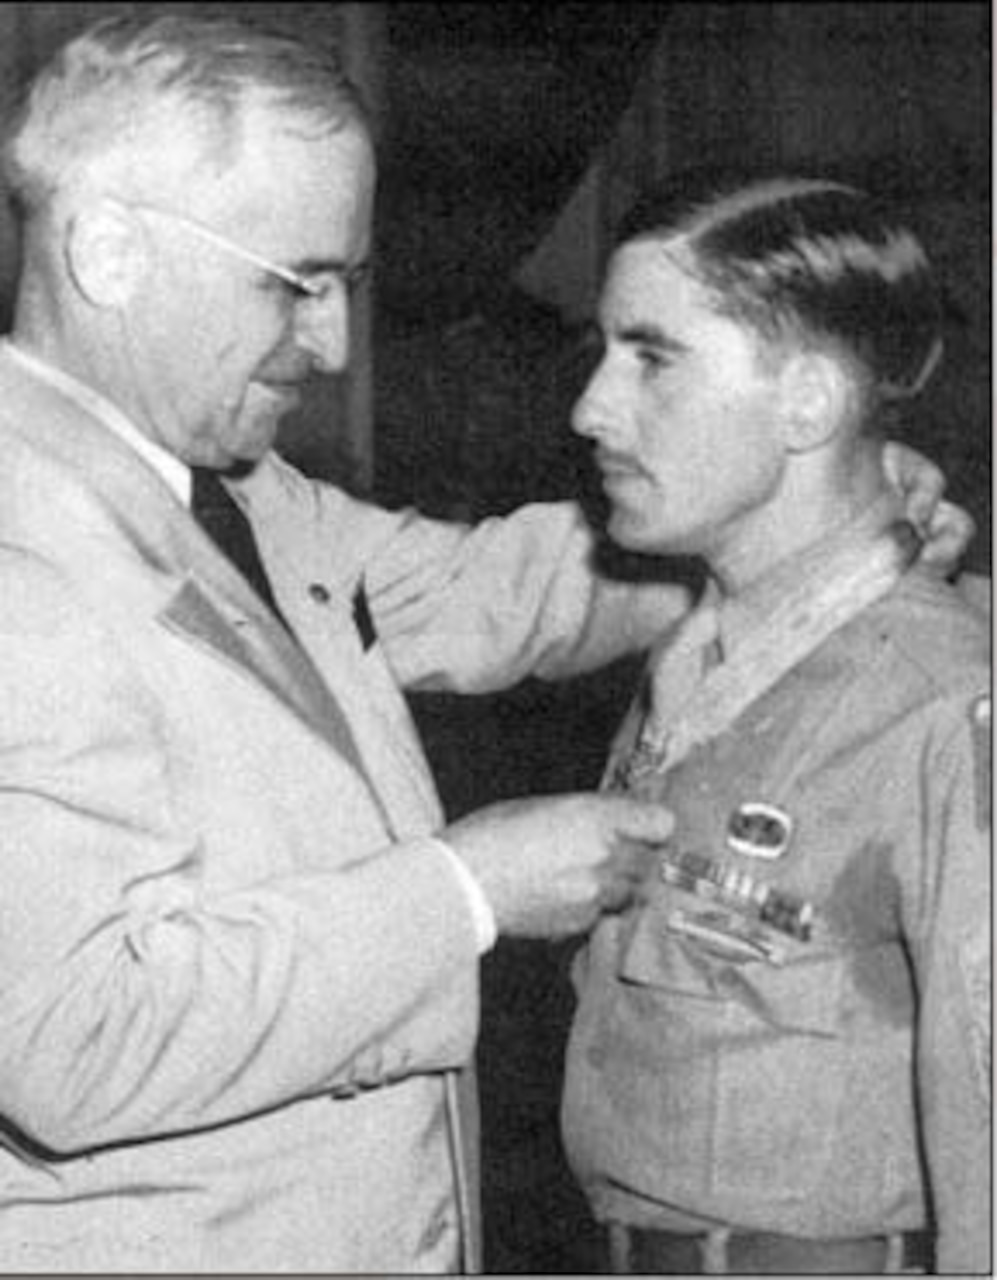 President Harry S. Truman places the Medal of Honor around the neck of a soldier who stands at attention.